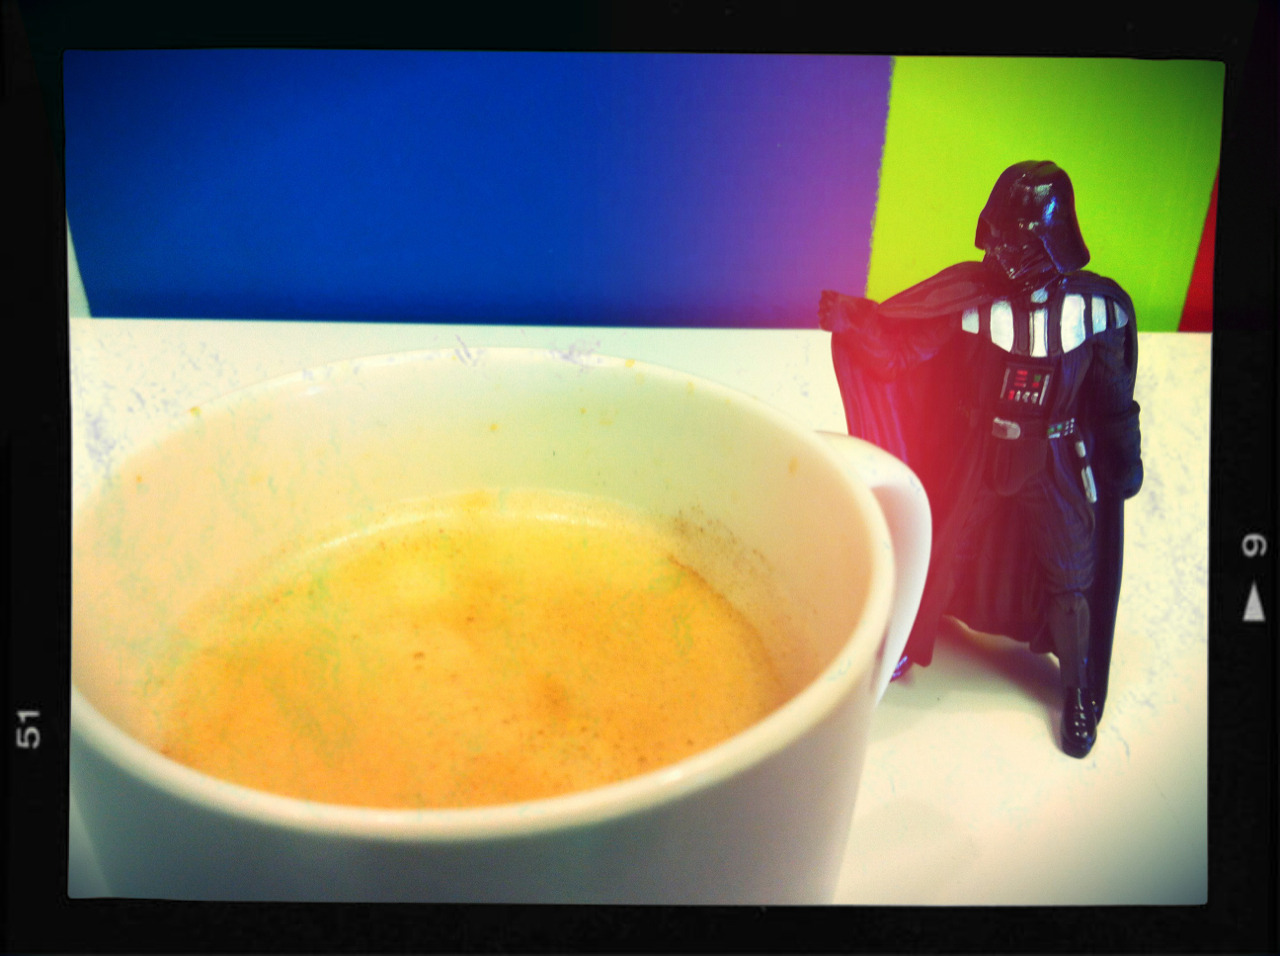 Vader finds your lack of caffeine disturbing…